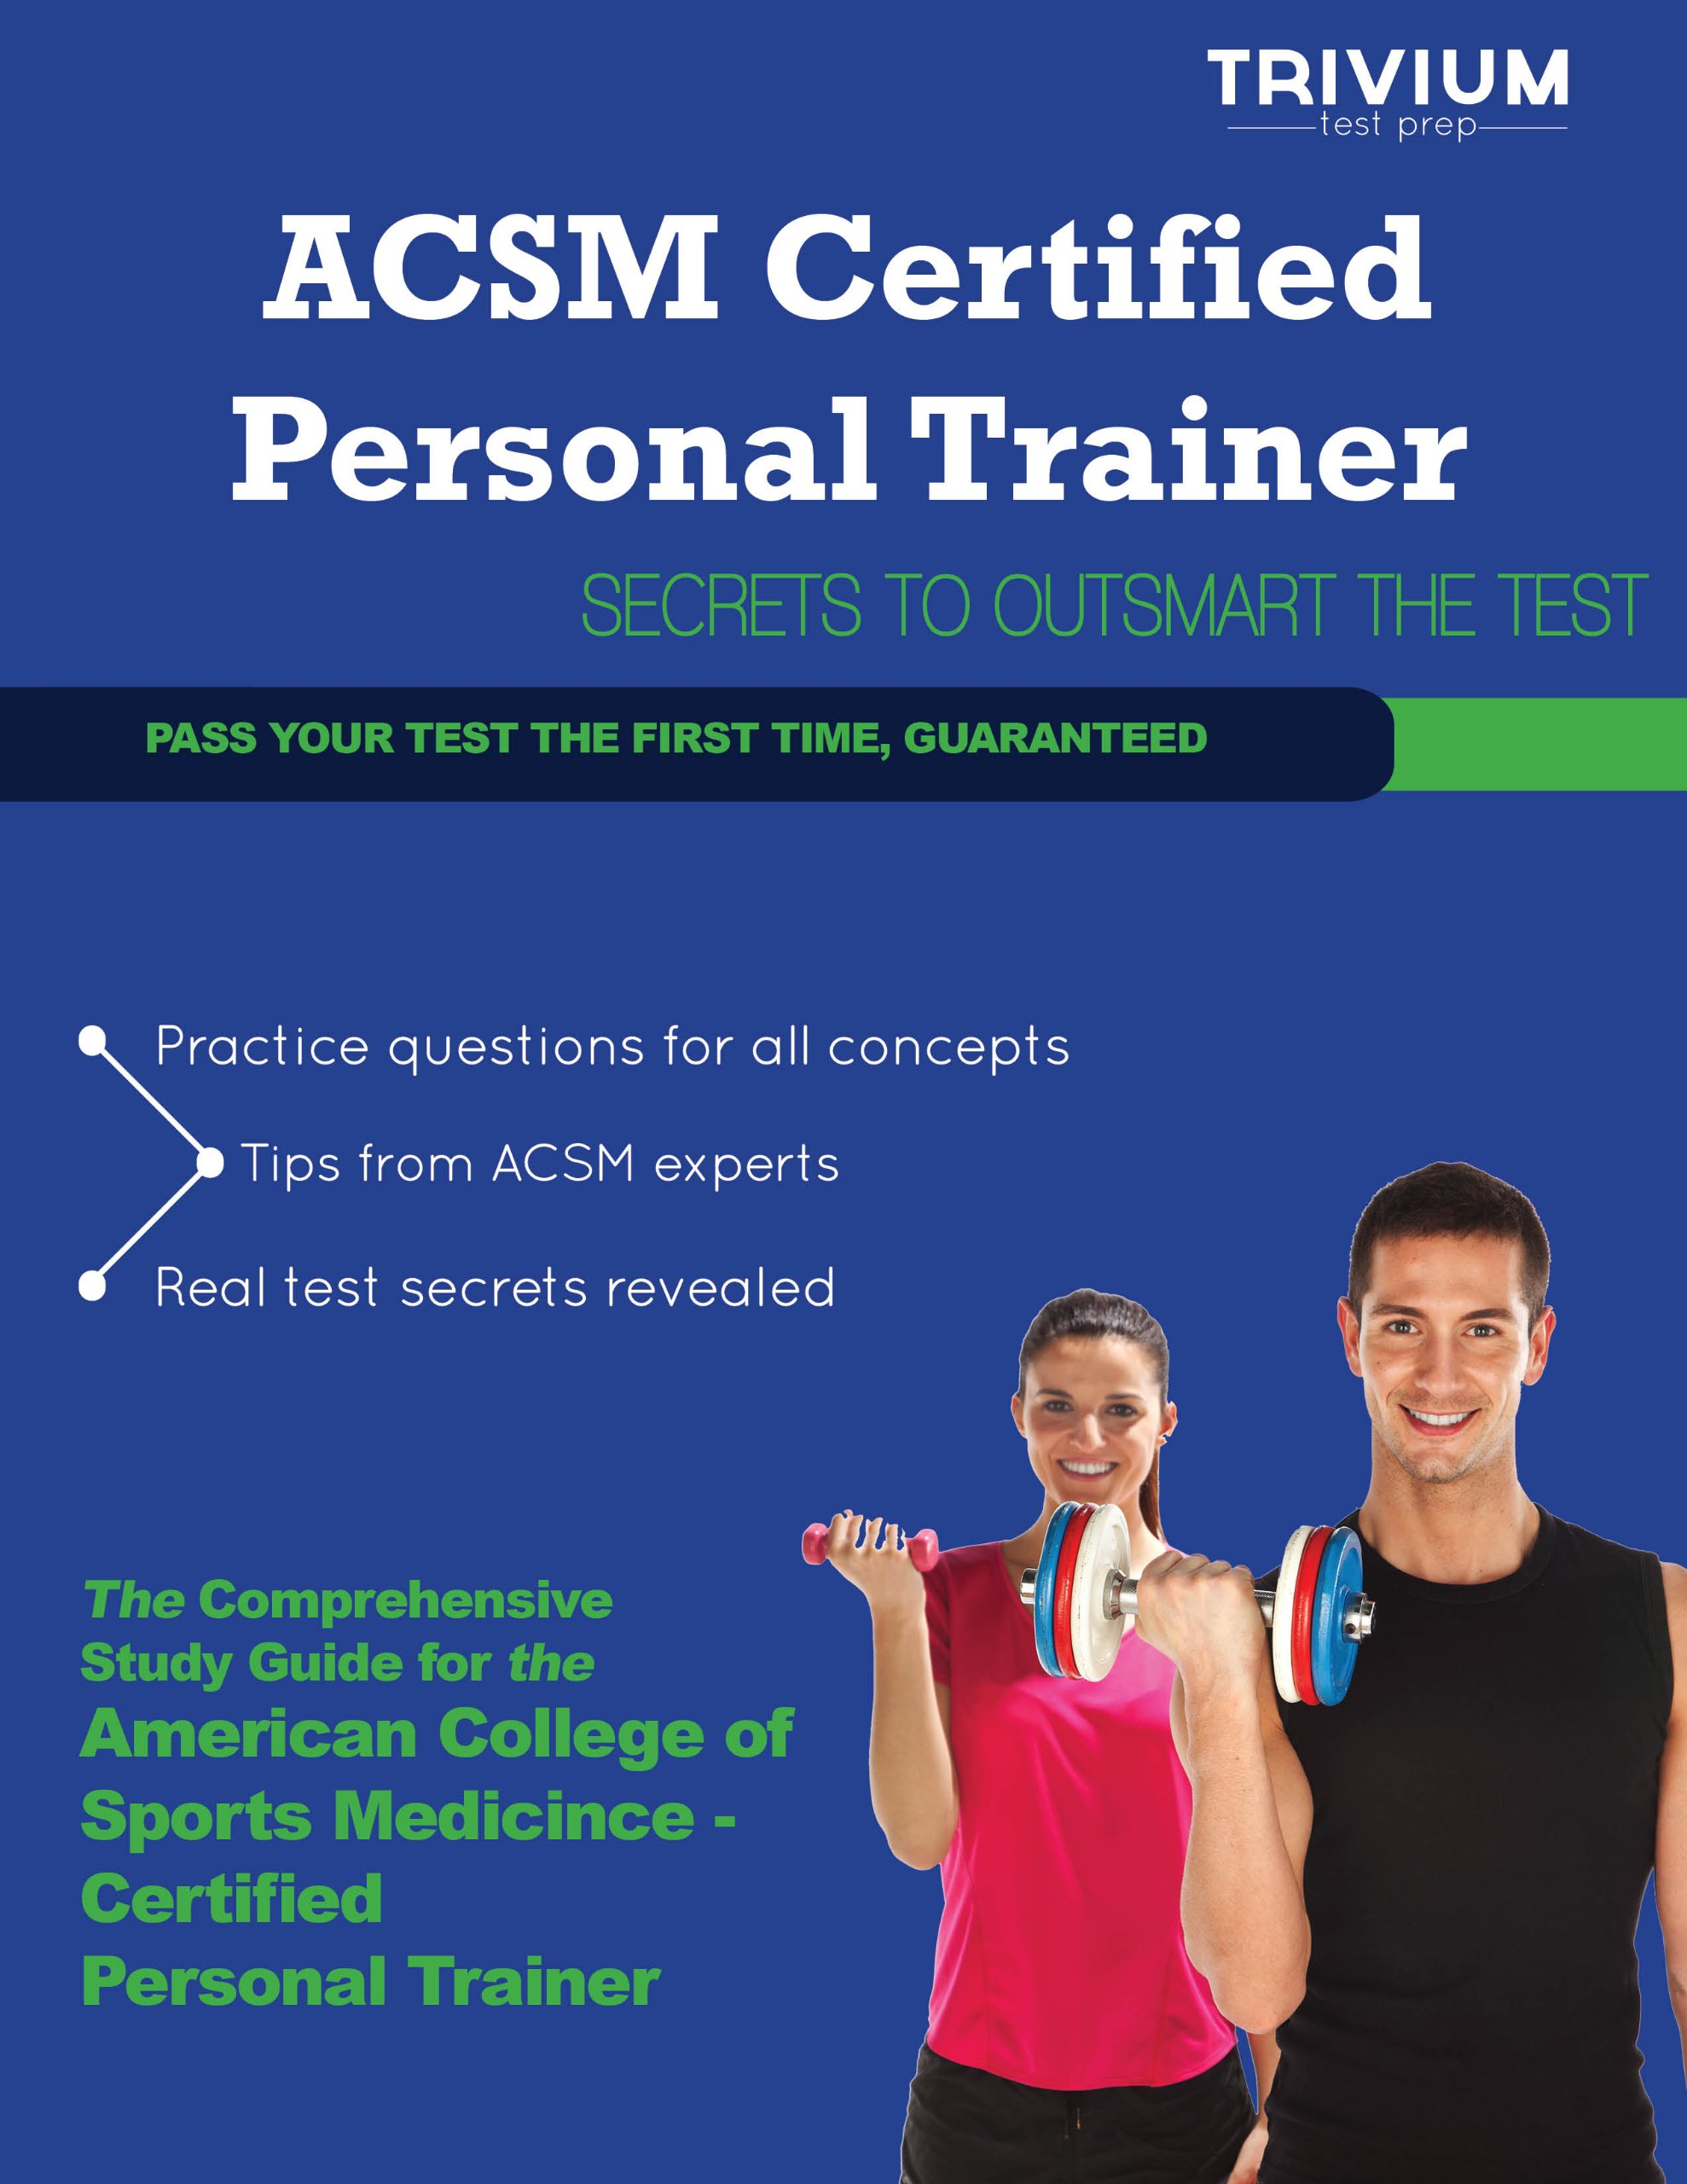 ACSM Certified Personal Trainer Study Guide 2013 - Secrets to Outsmart the  CPT: Trivium Test Prep: 9781939587558: Amazon.com: Books